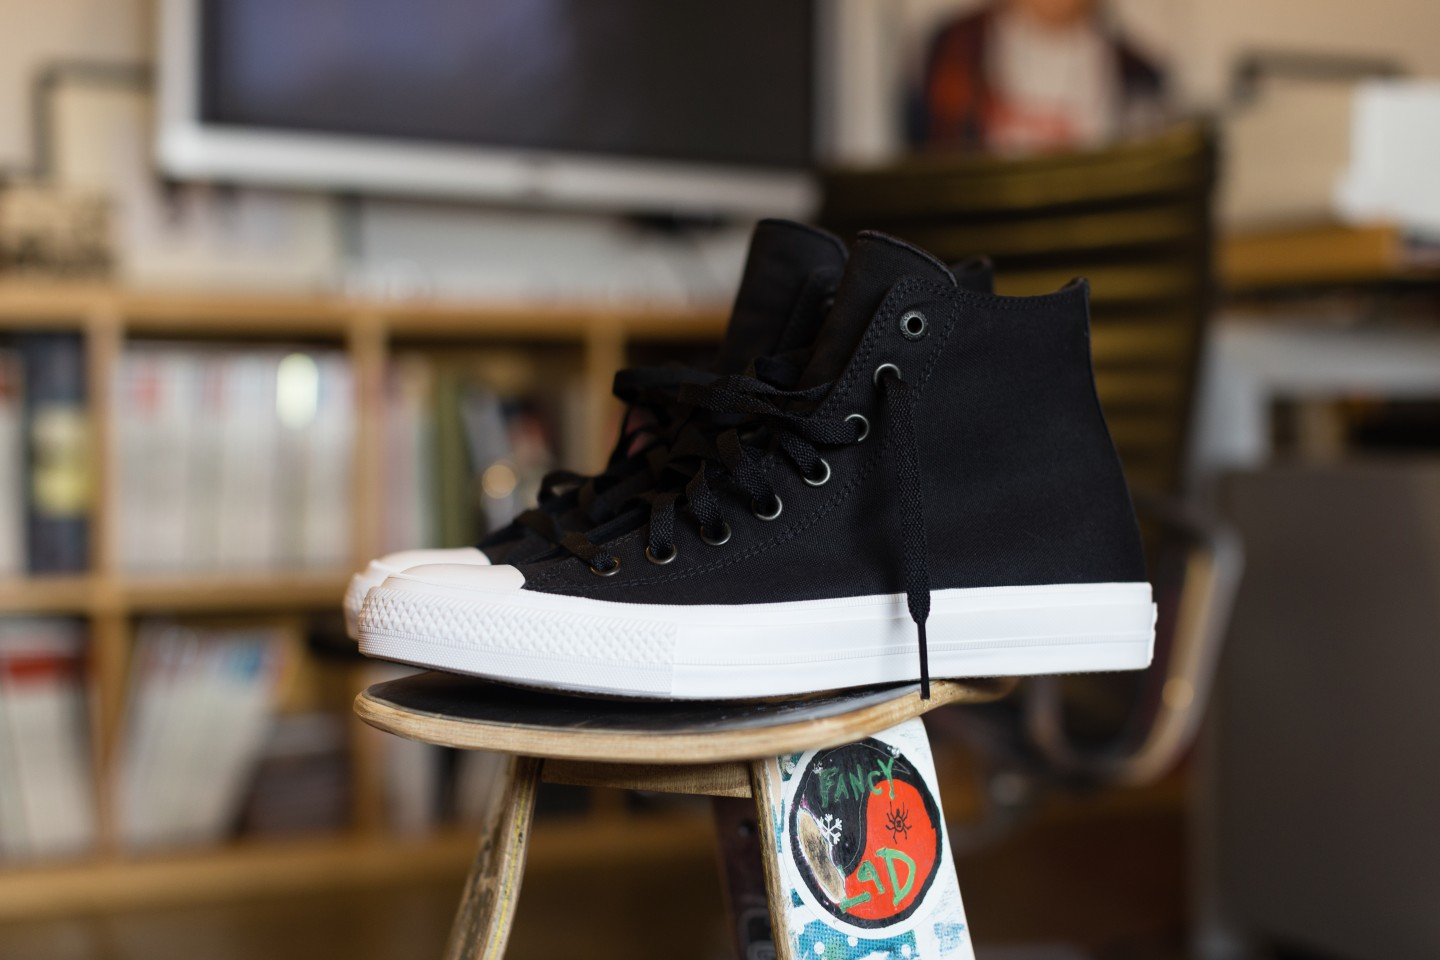 Converse Redesigned The Chuck Taylor For The First Time In A Century